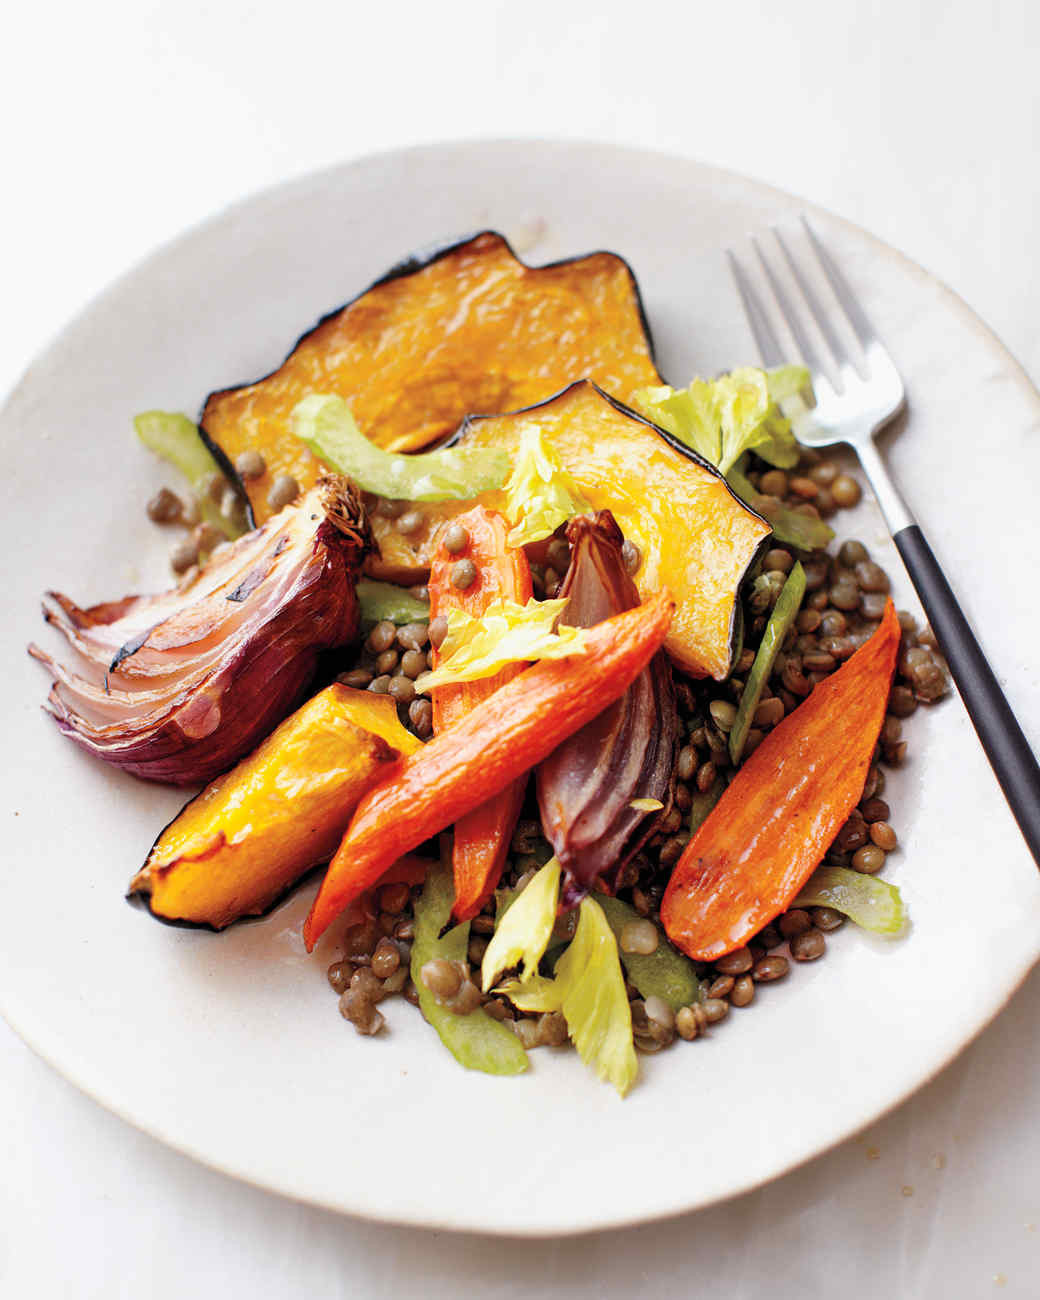 Vegetarian Fall Dinner Recipes  Roast Ve able Salad Recipes For Year Round Eating